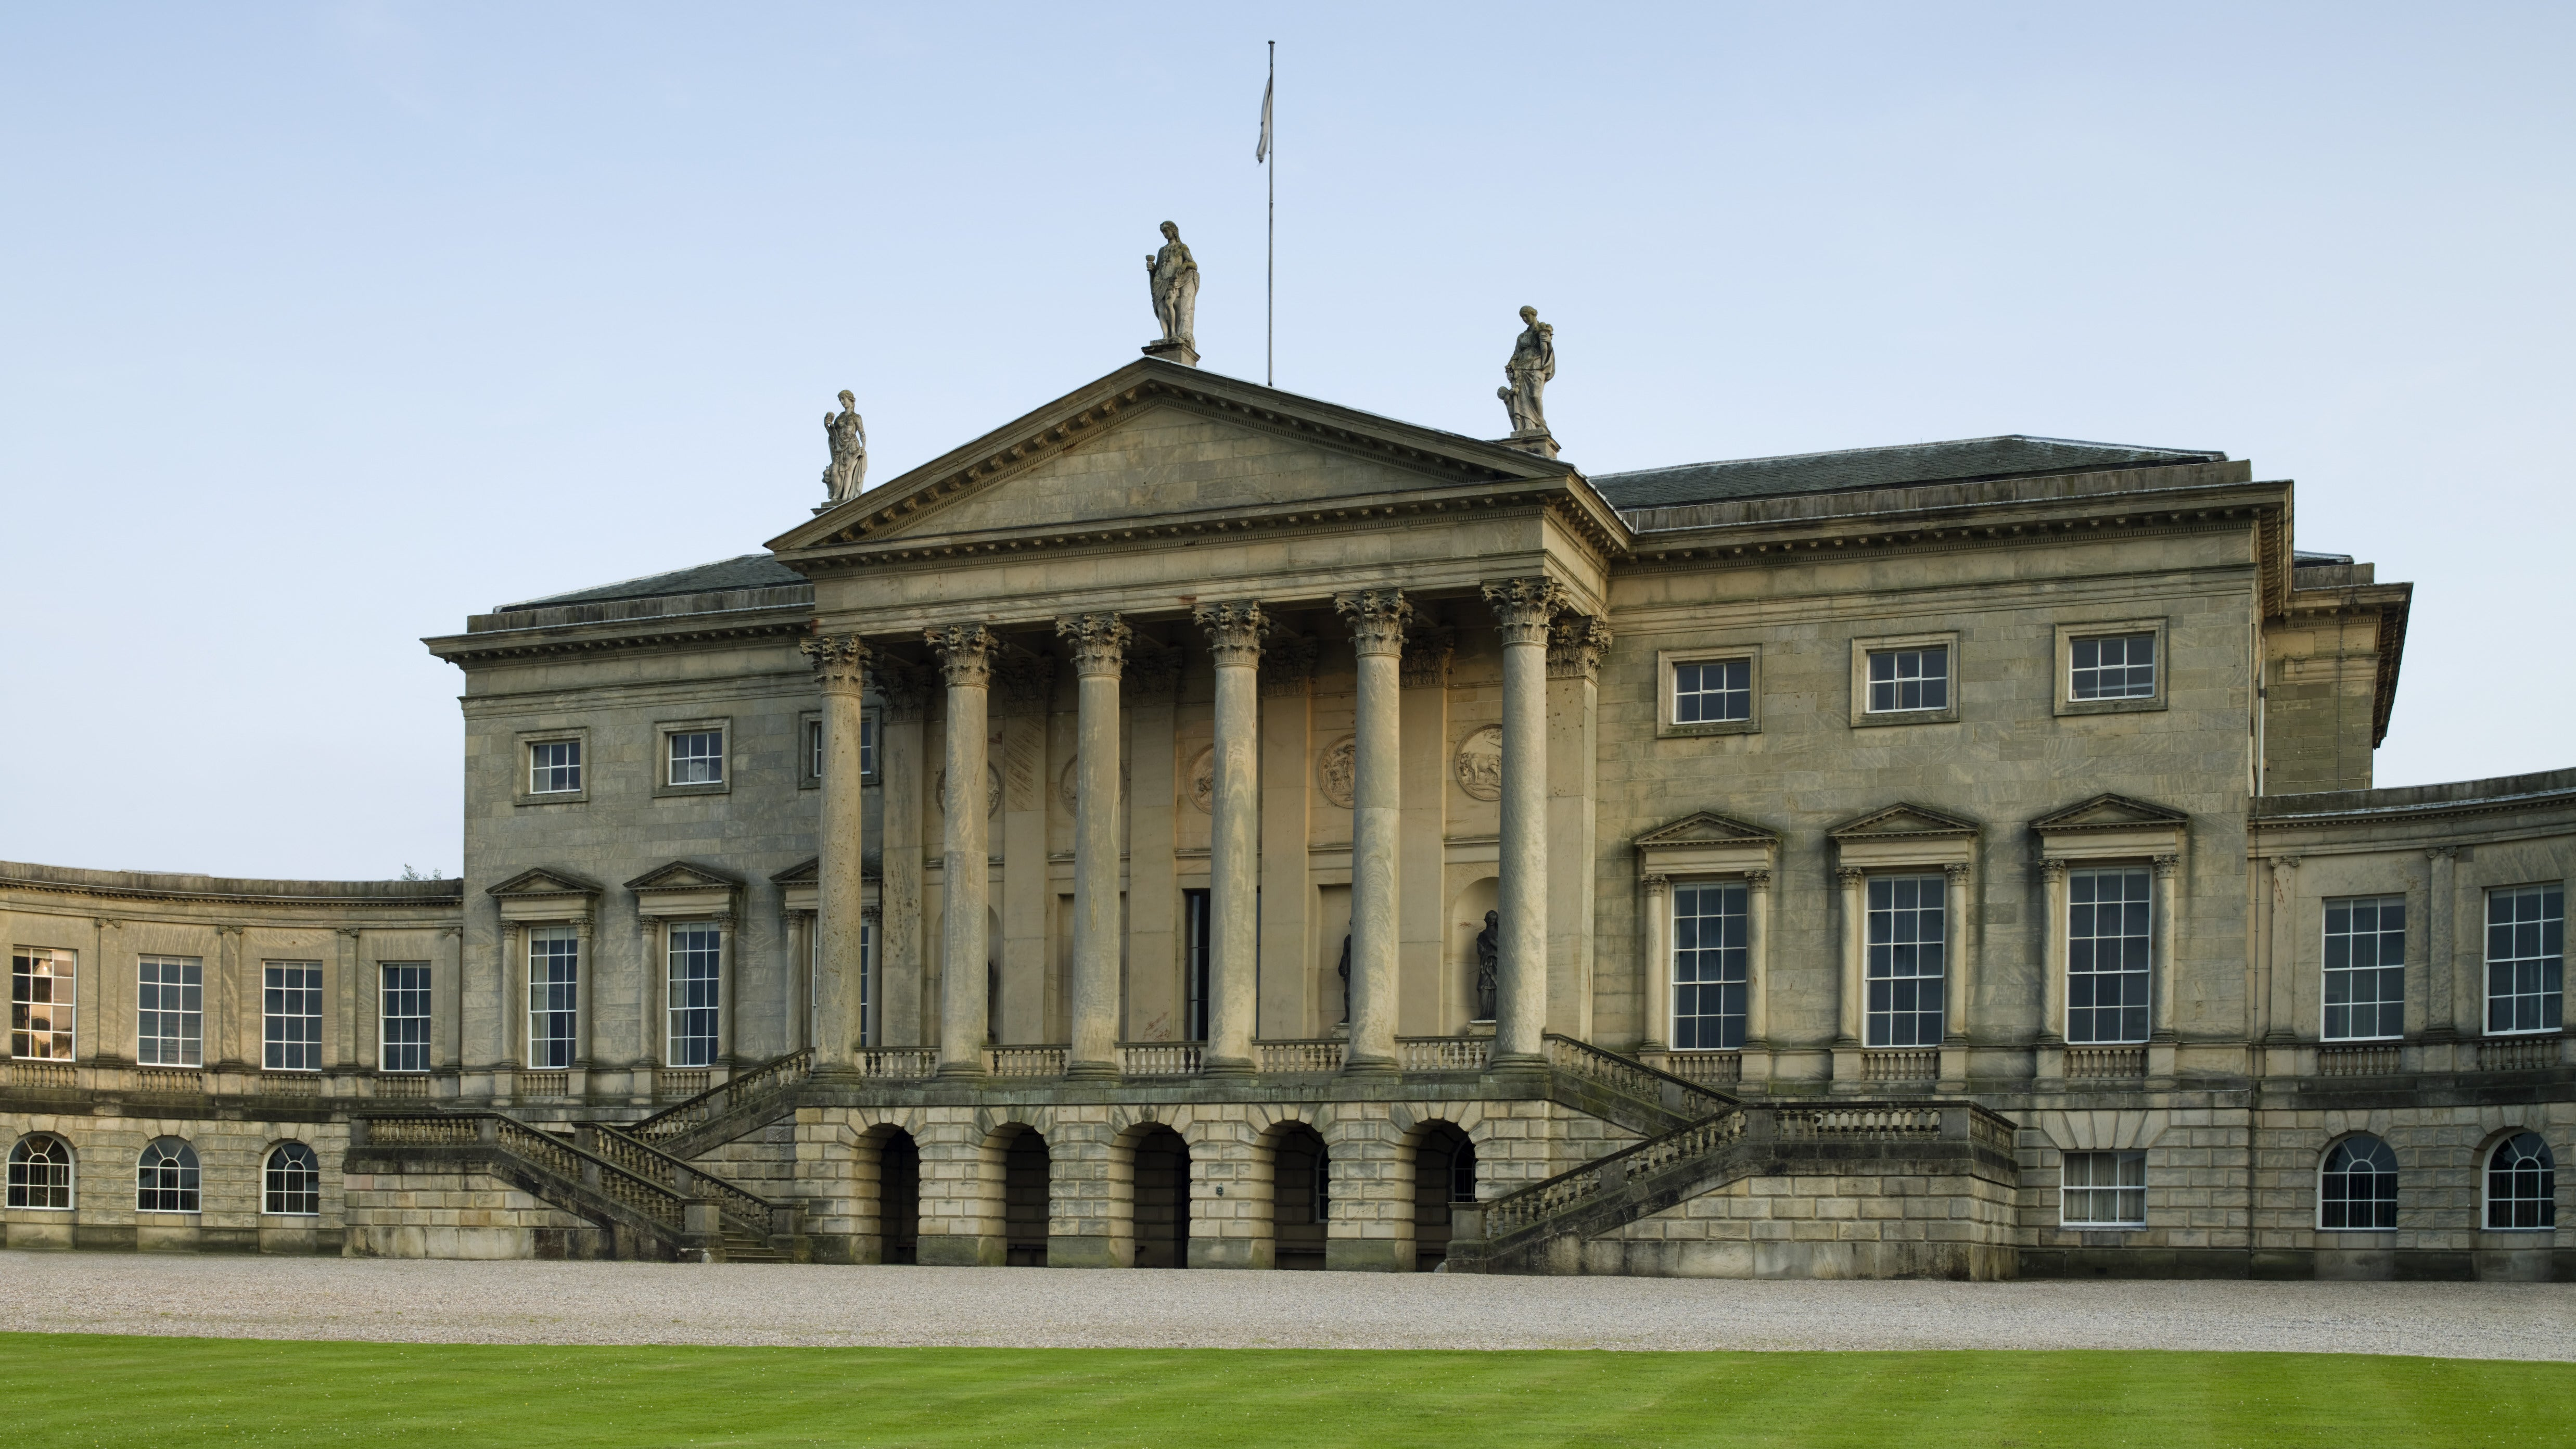 The north Palladian front of Kedleston Hall, Kedleston, Quarndon, Derbyshire